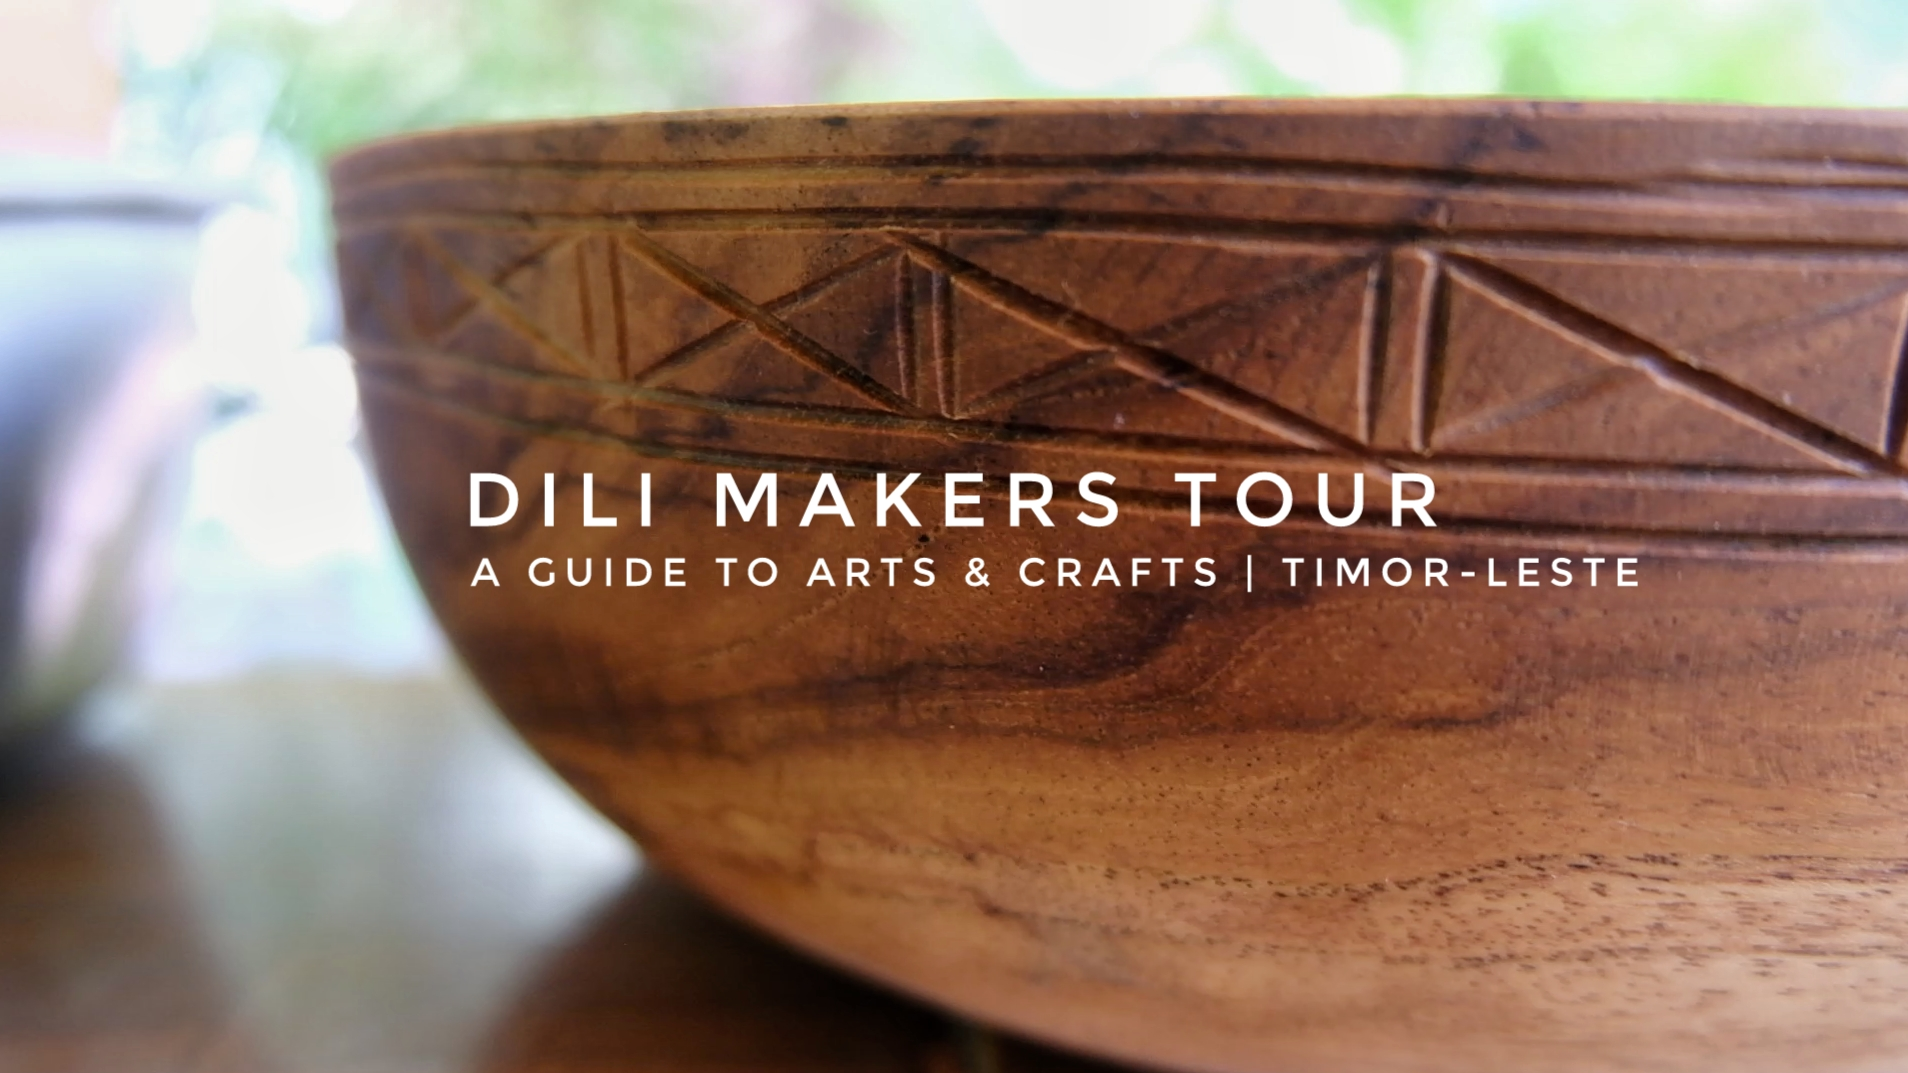 Dili Makers Tour: A Guide to Arts & Crafts | Timor Leste